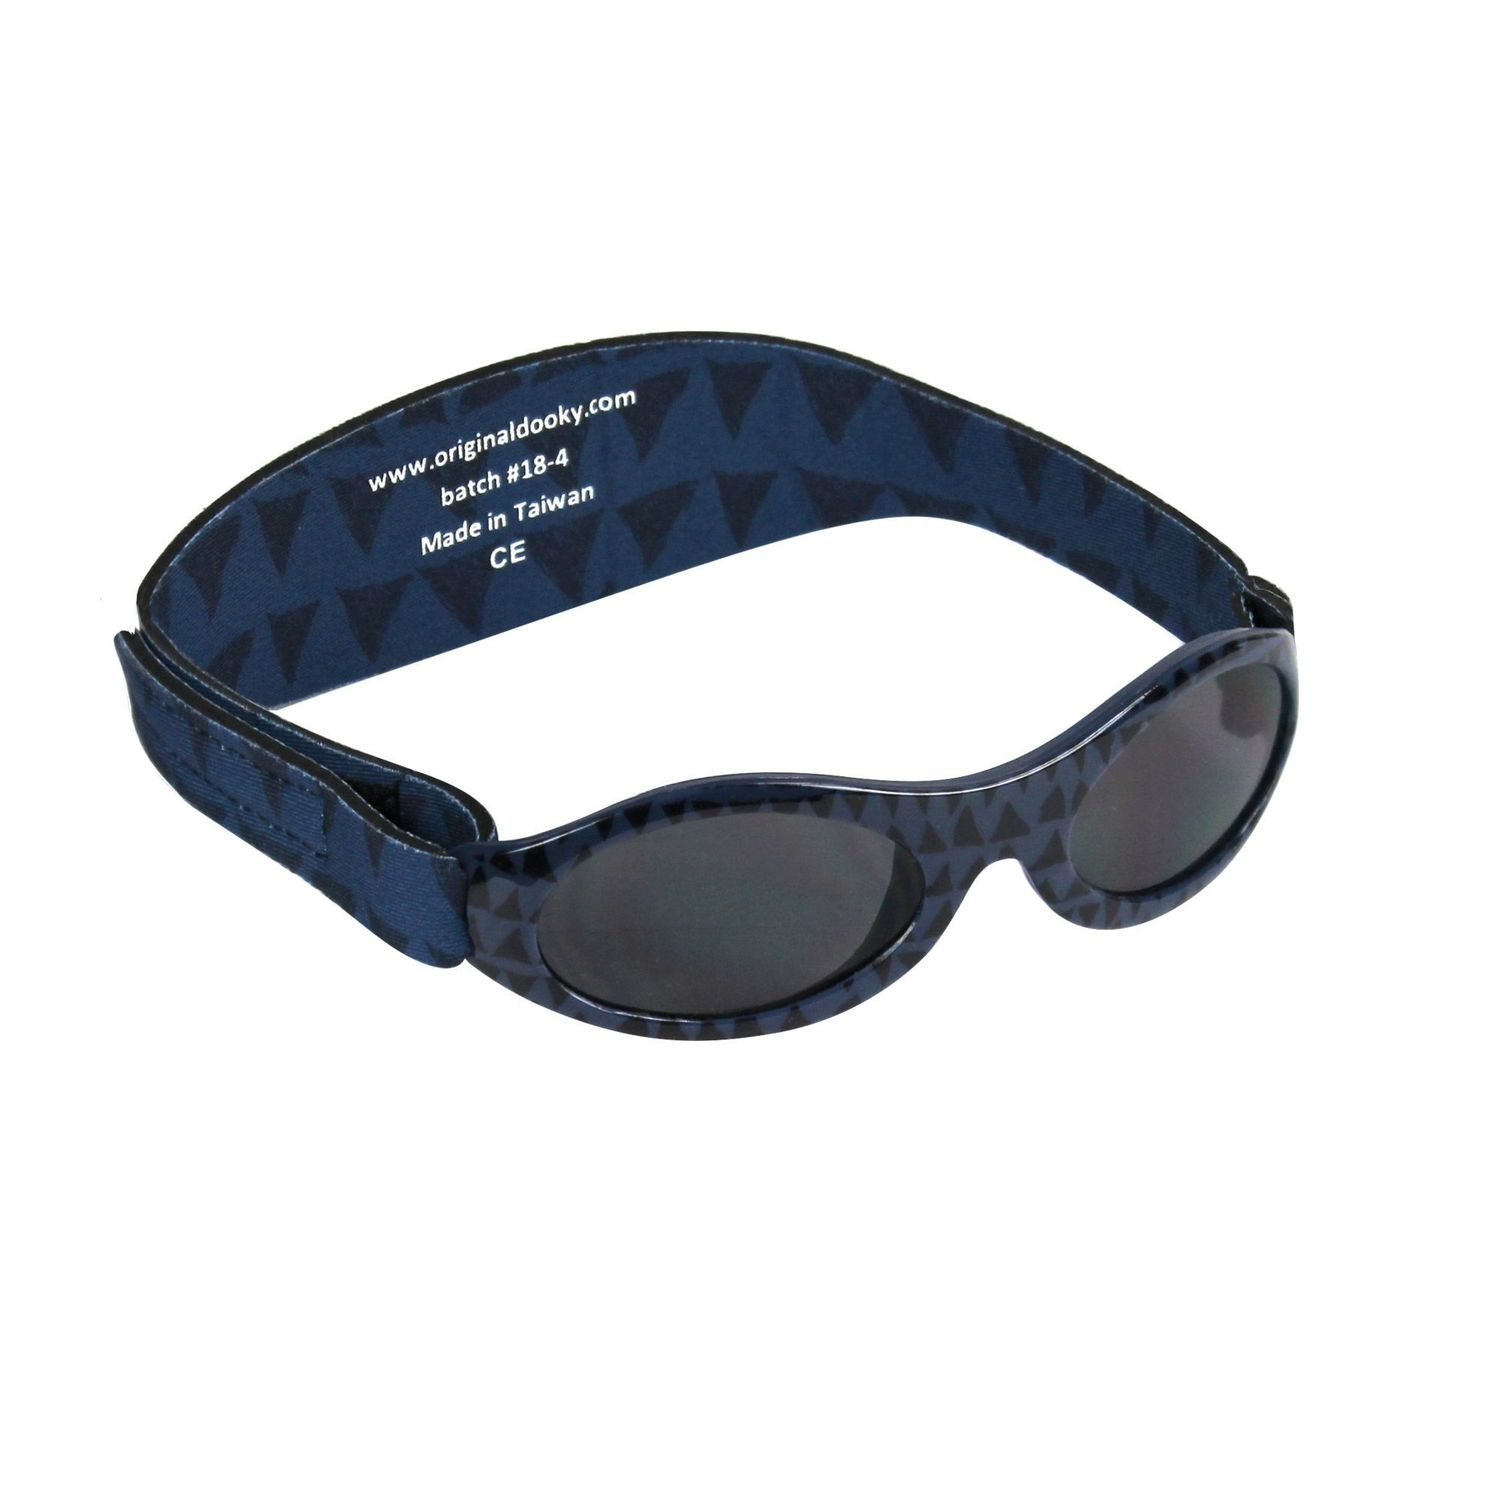 Dooky Baby Banz Baby/Toddler Sunglasses 0-2 years - Blue Tribal